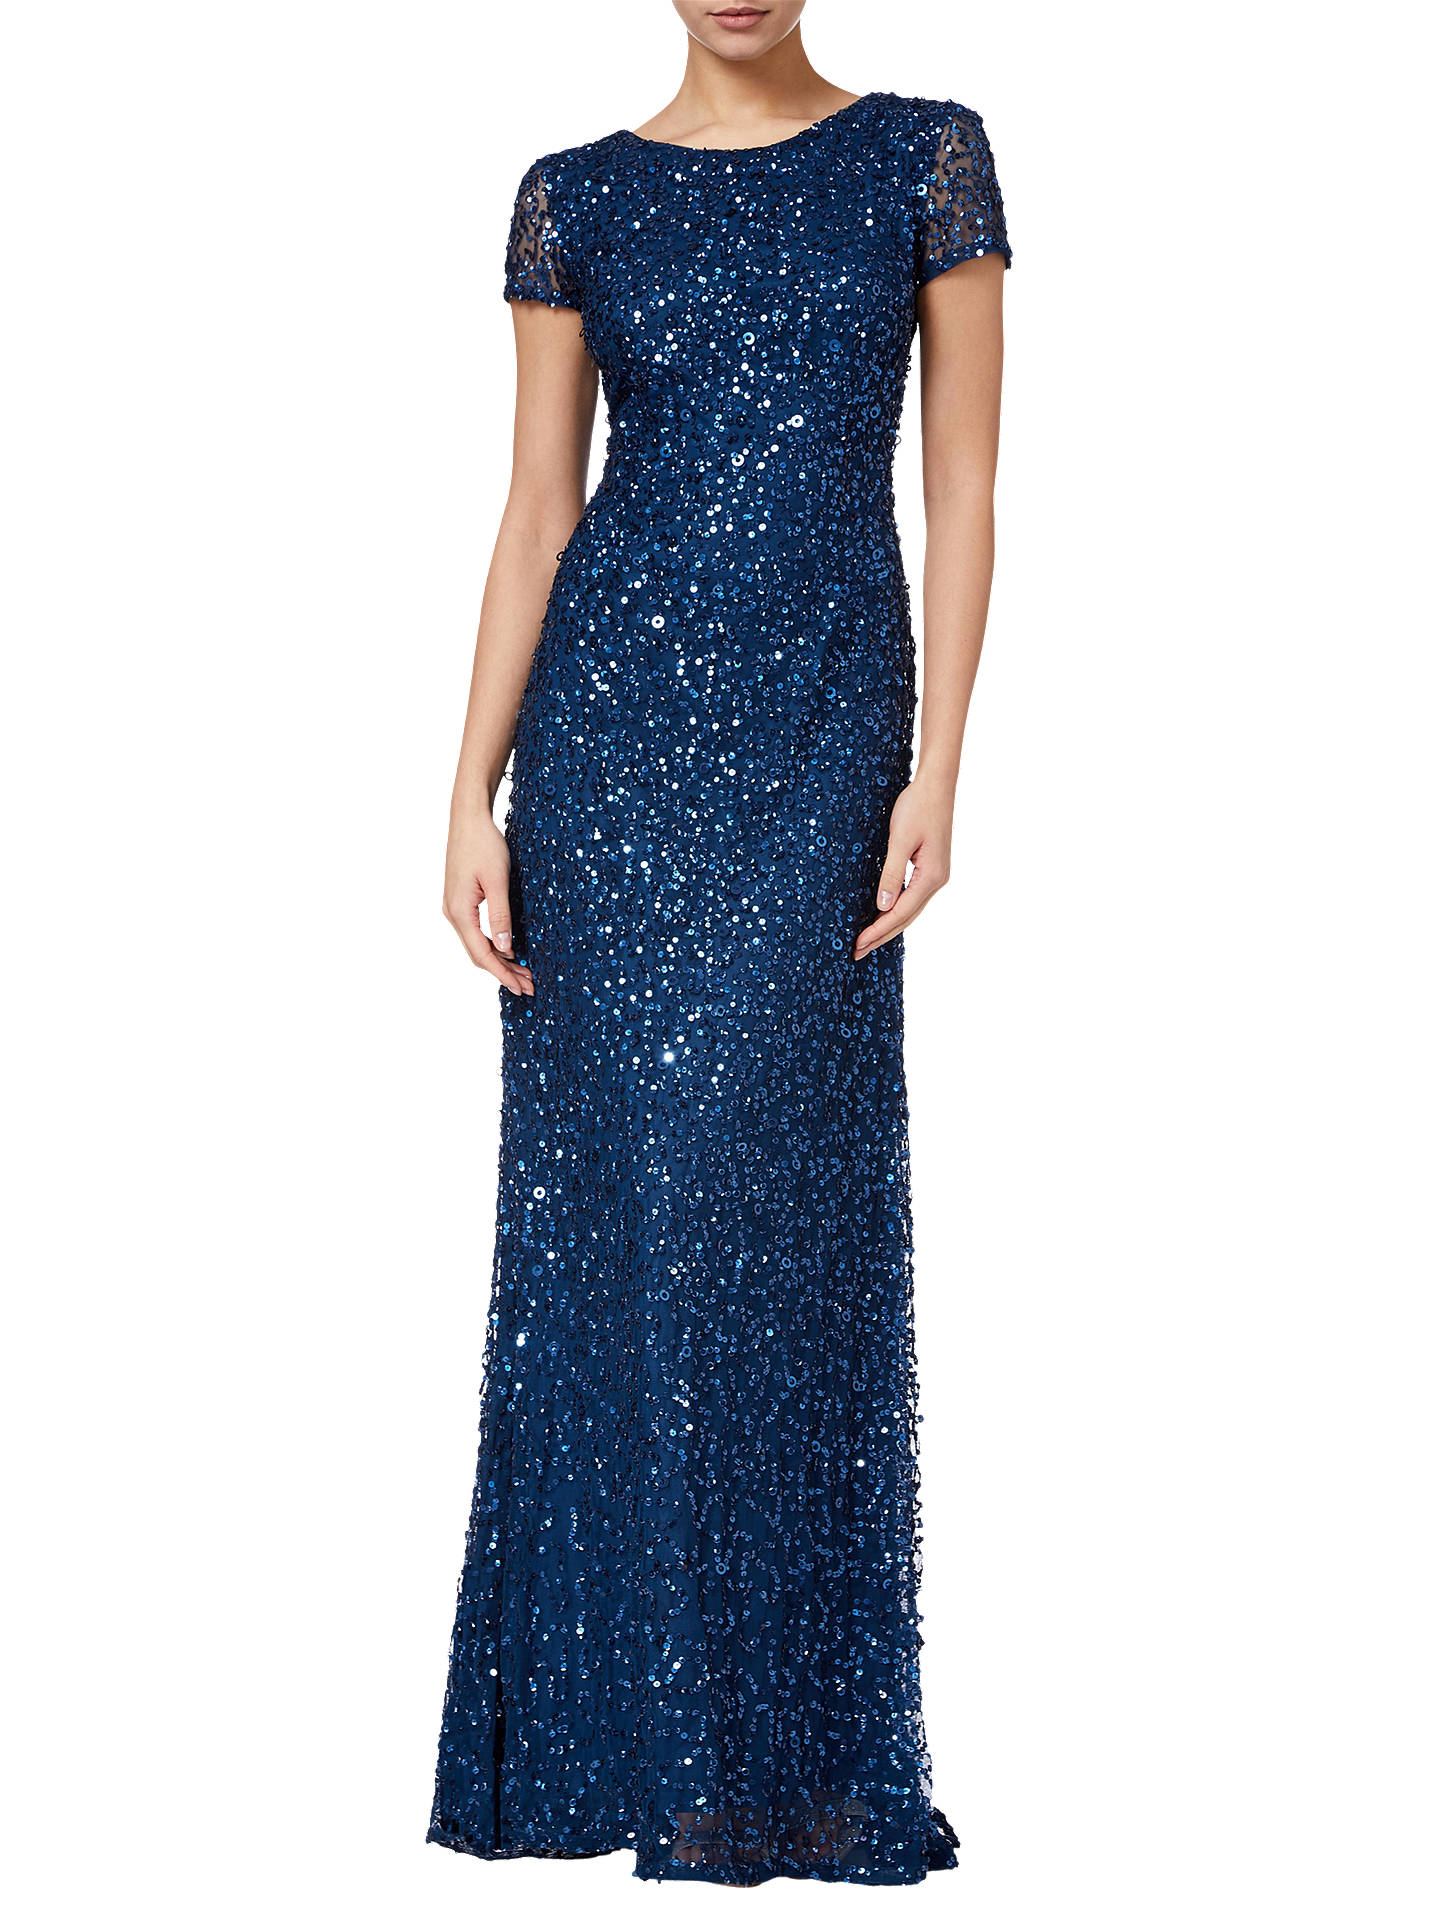 Buy Adrianna Papell Scoop Back Sequin Evening Dress, Deep Blue, 8 Online at johnlewis.com